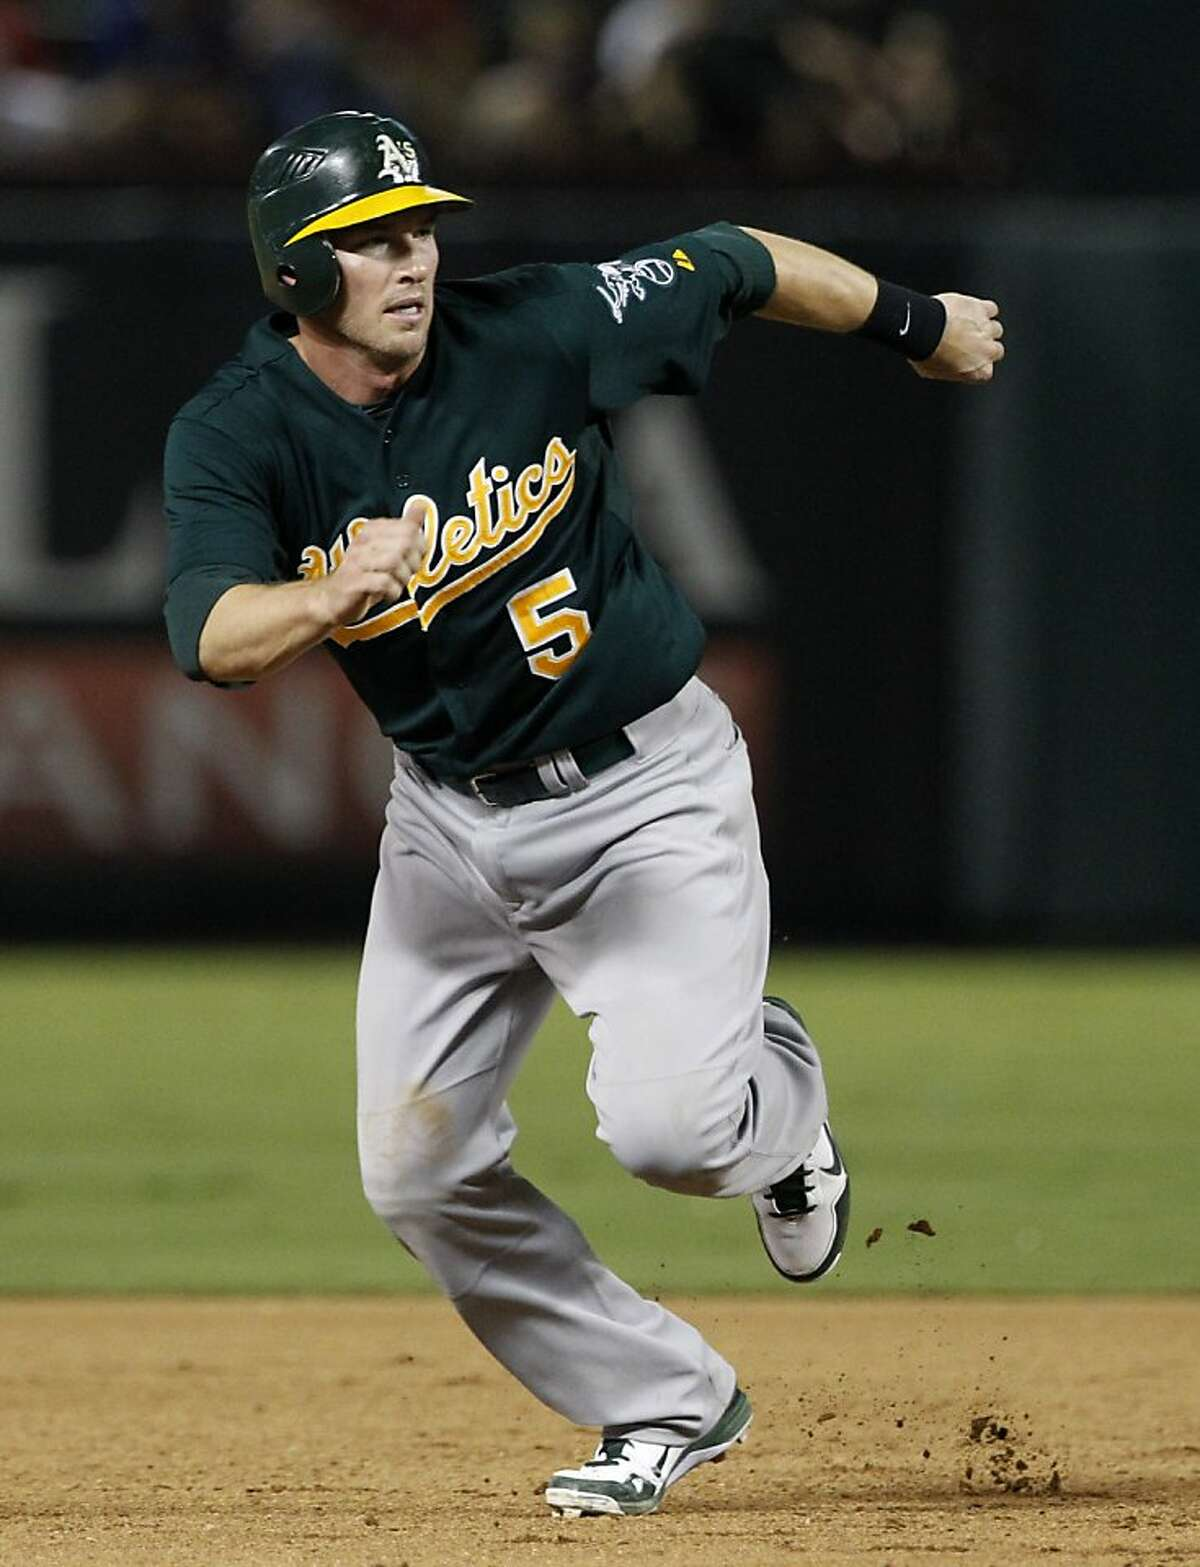 Oakland Athletics' Stephen Drew (5) advances to third on a ground out by Yoenis Cespedes in the eighth inning of a baseball game against the Texas Rangers, Wednesday, Sept. 26, 2012, in Arlington, Texas. Drew had four of Oakland's 16 hits, including a double leading off the game in the 9-3. Athletics win. (AP Photo/Tony Gutierrez)